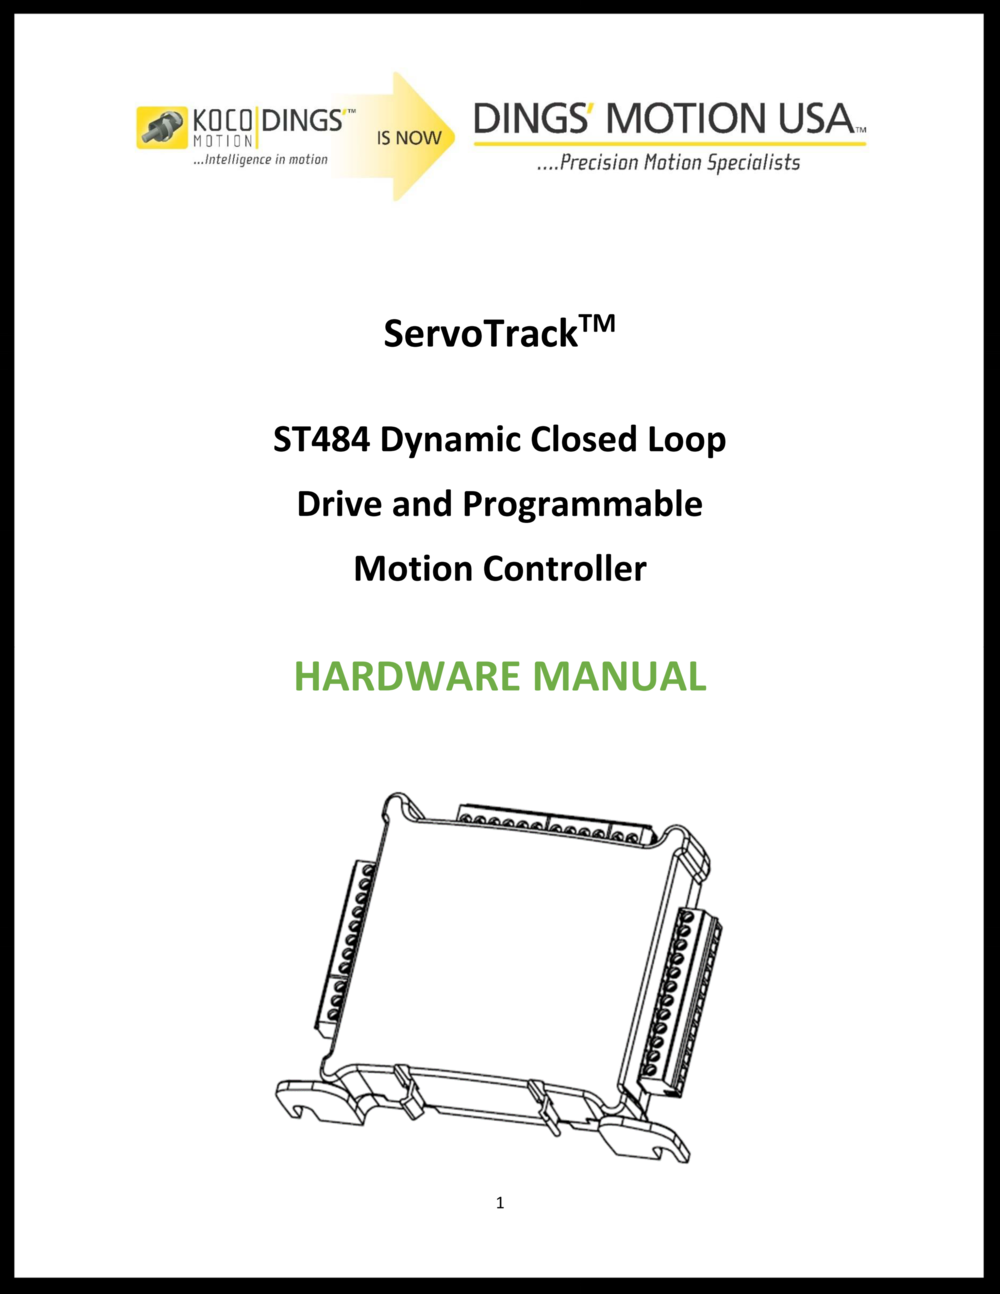 ST484 Hardware Manual